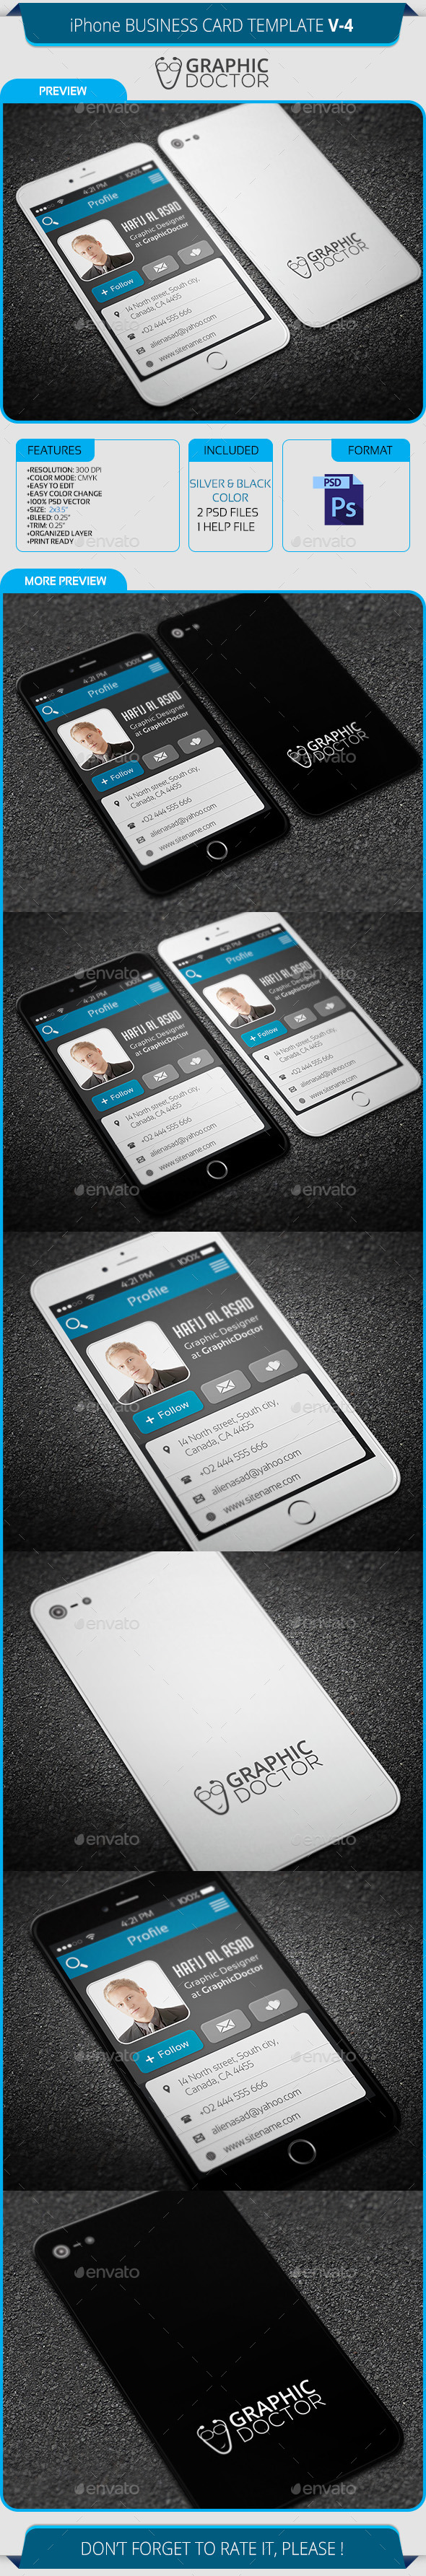 Iphone business card template v 4 by graphicdoctor graphicriver iphone business card template v 4 real objects business cards flashek Gallery